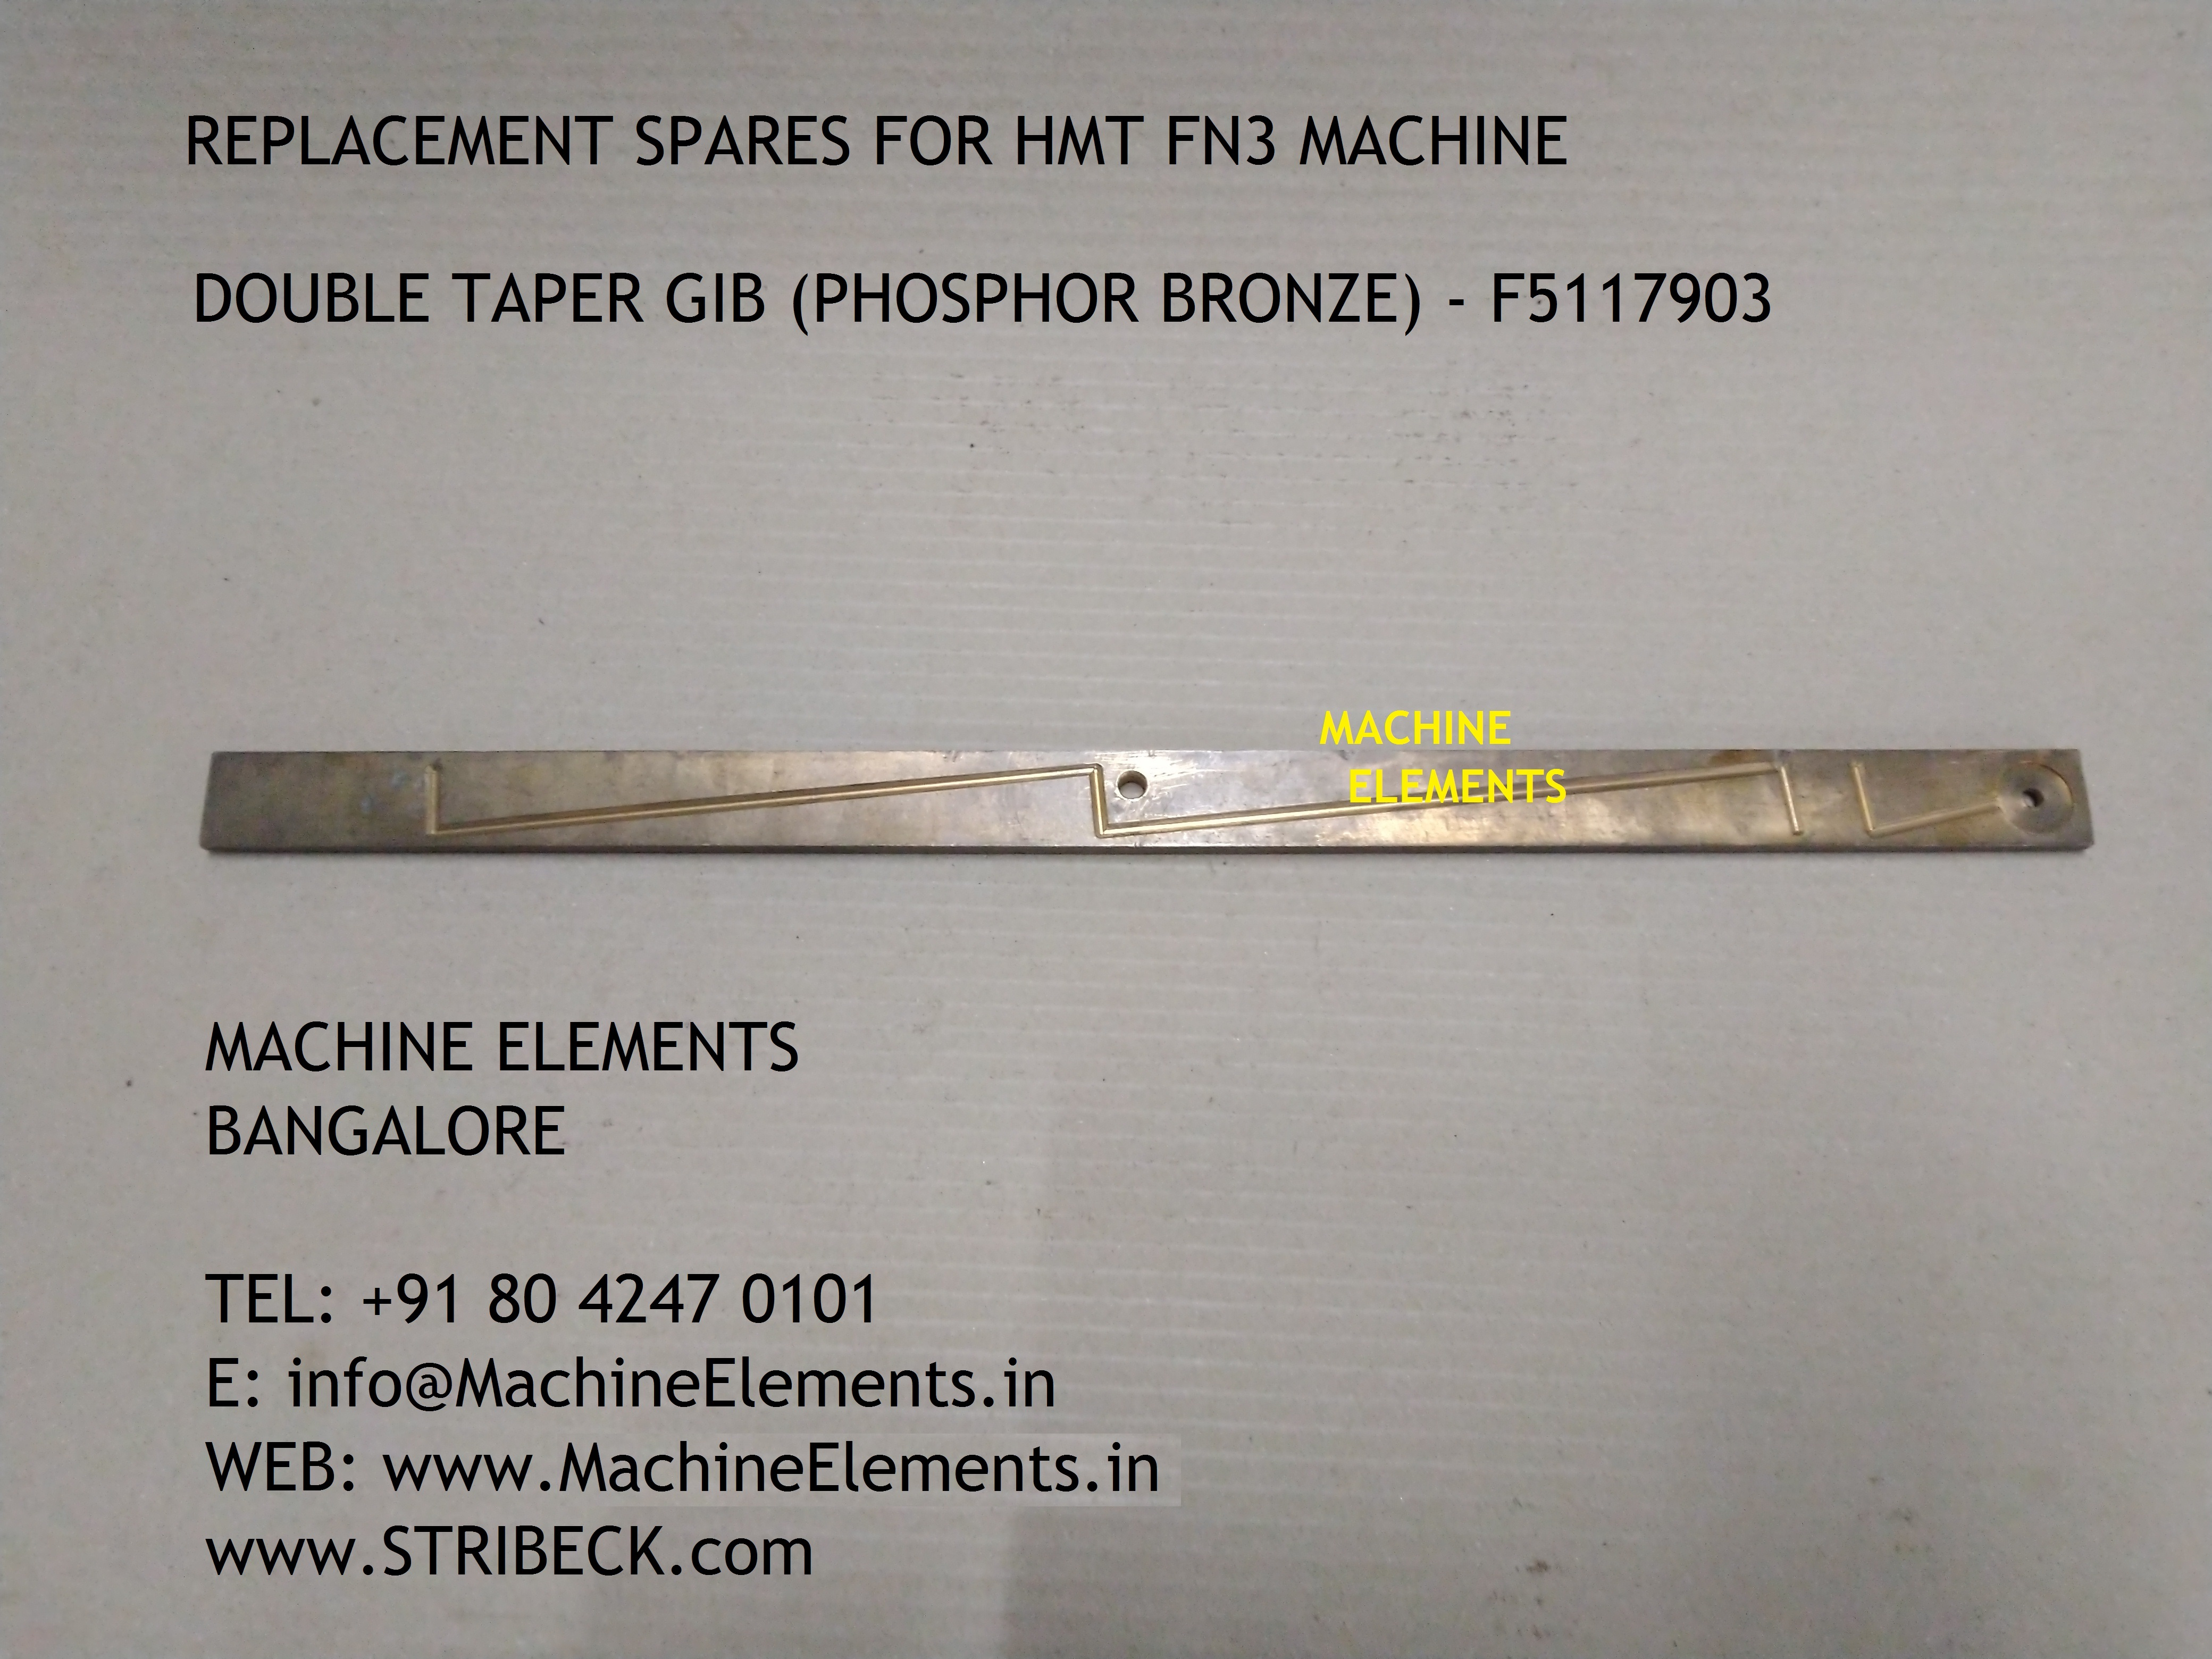 DOUBLE TAPER GIB (PB) - F5117903